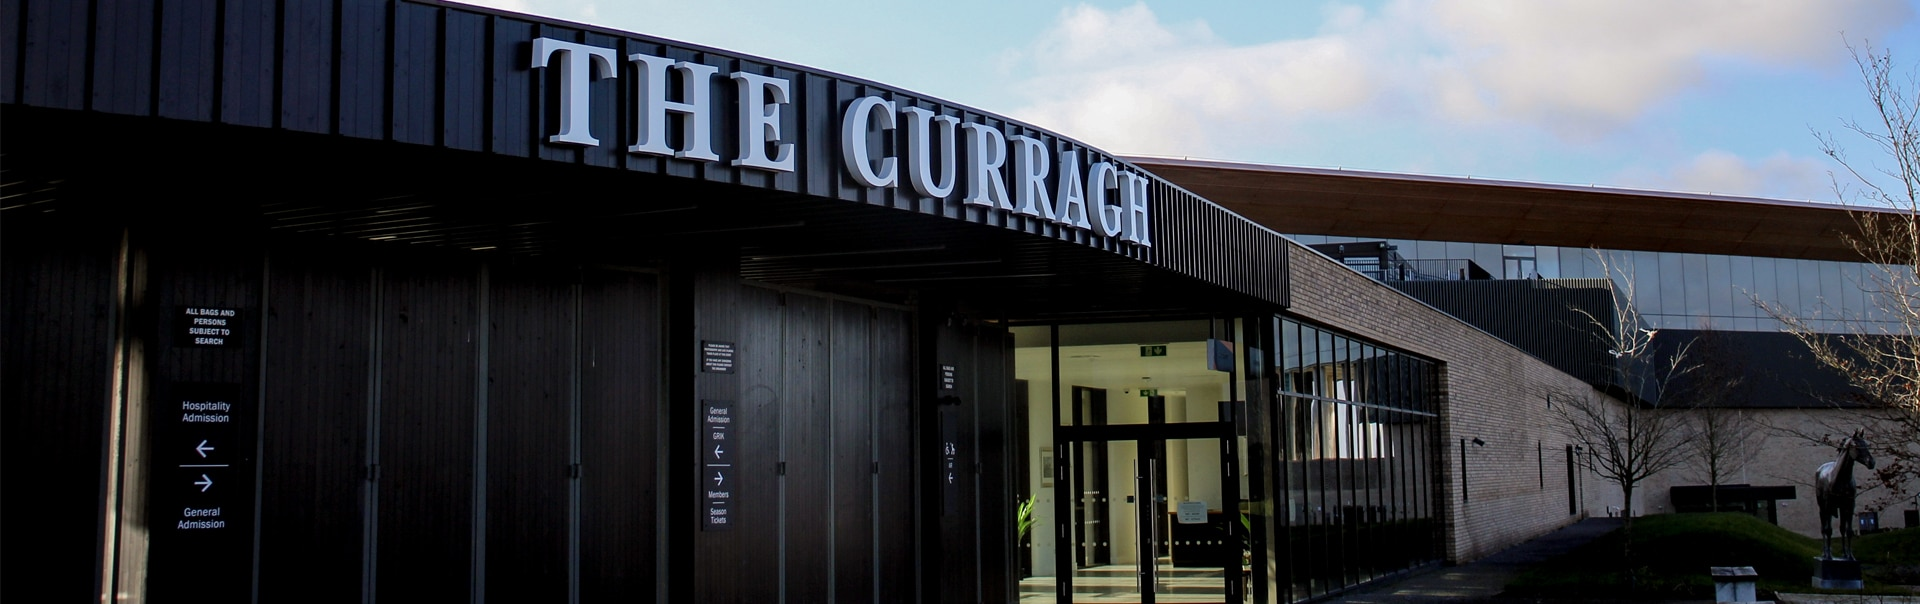 The Curragh Racecourse | Outdoor Sign | Entrance Sign